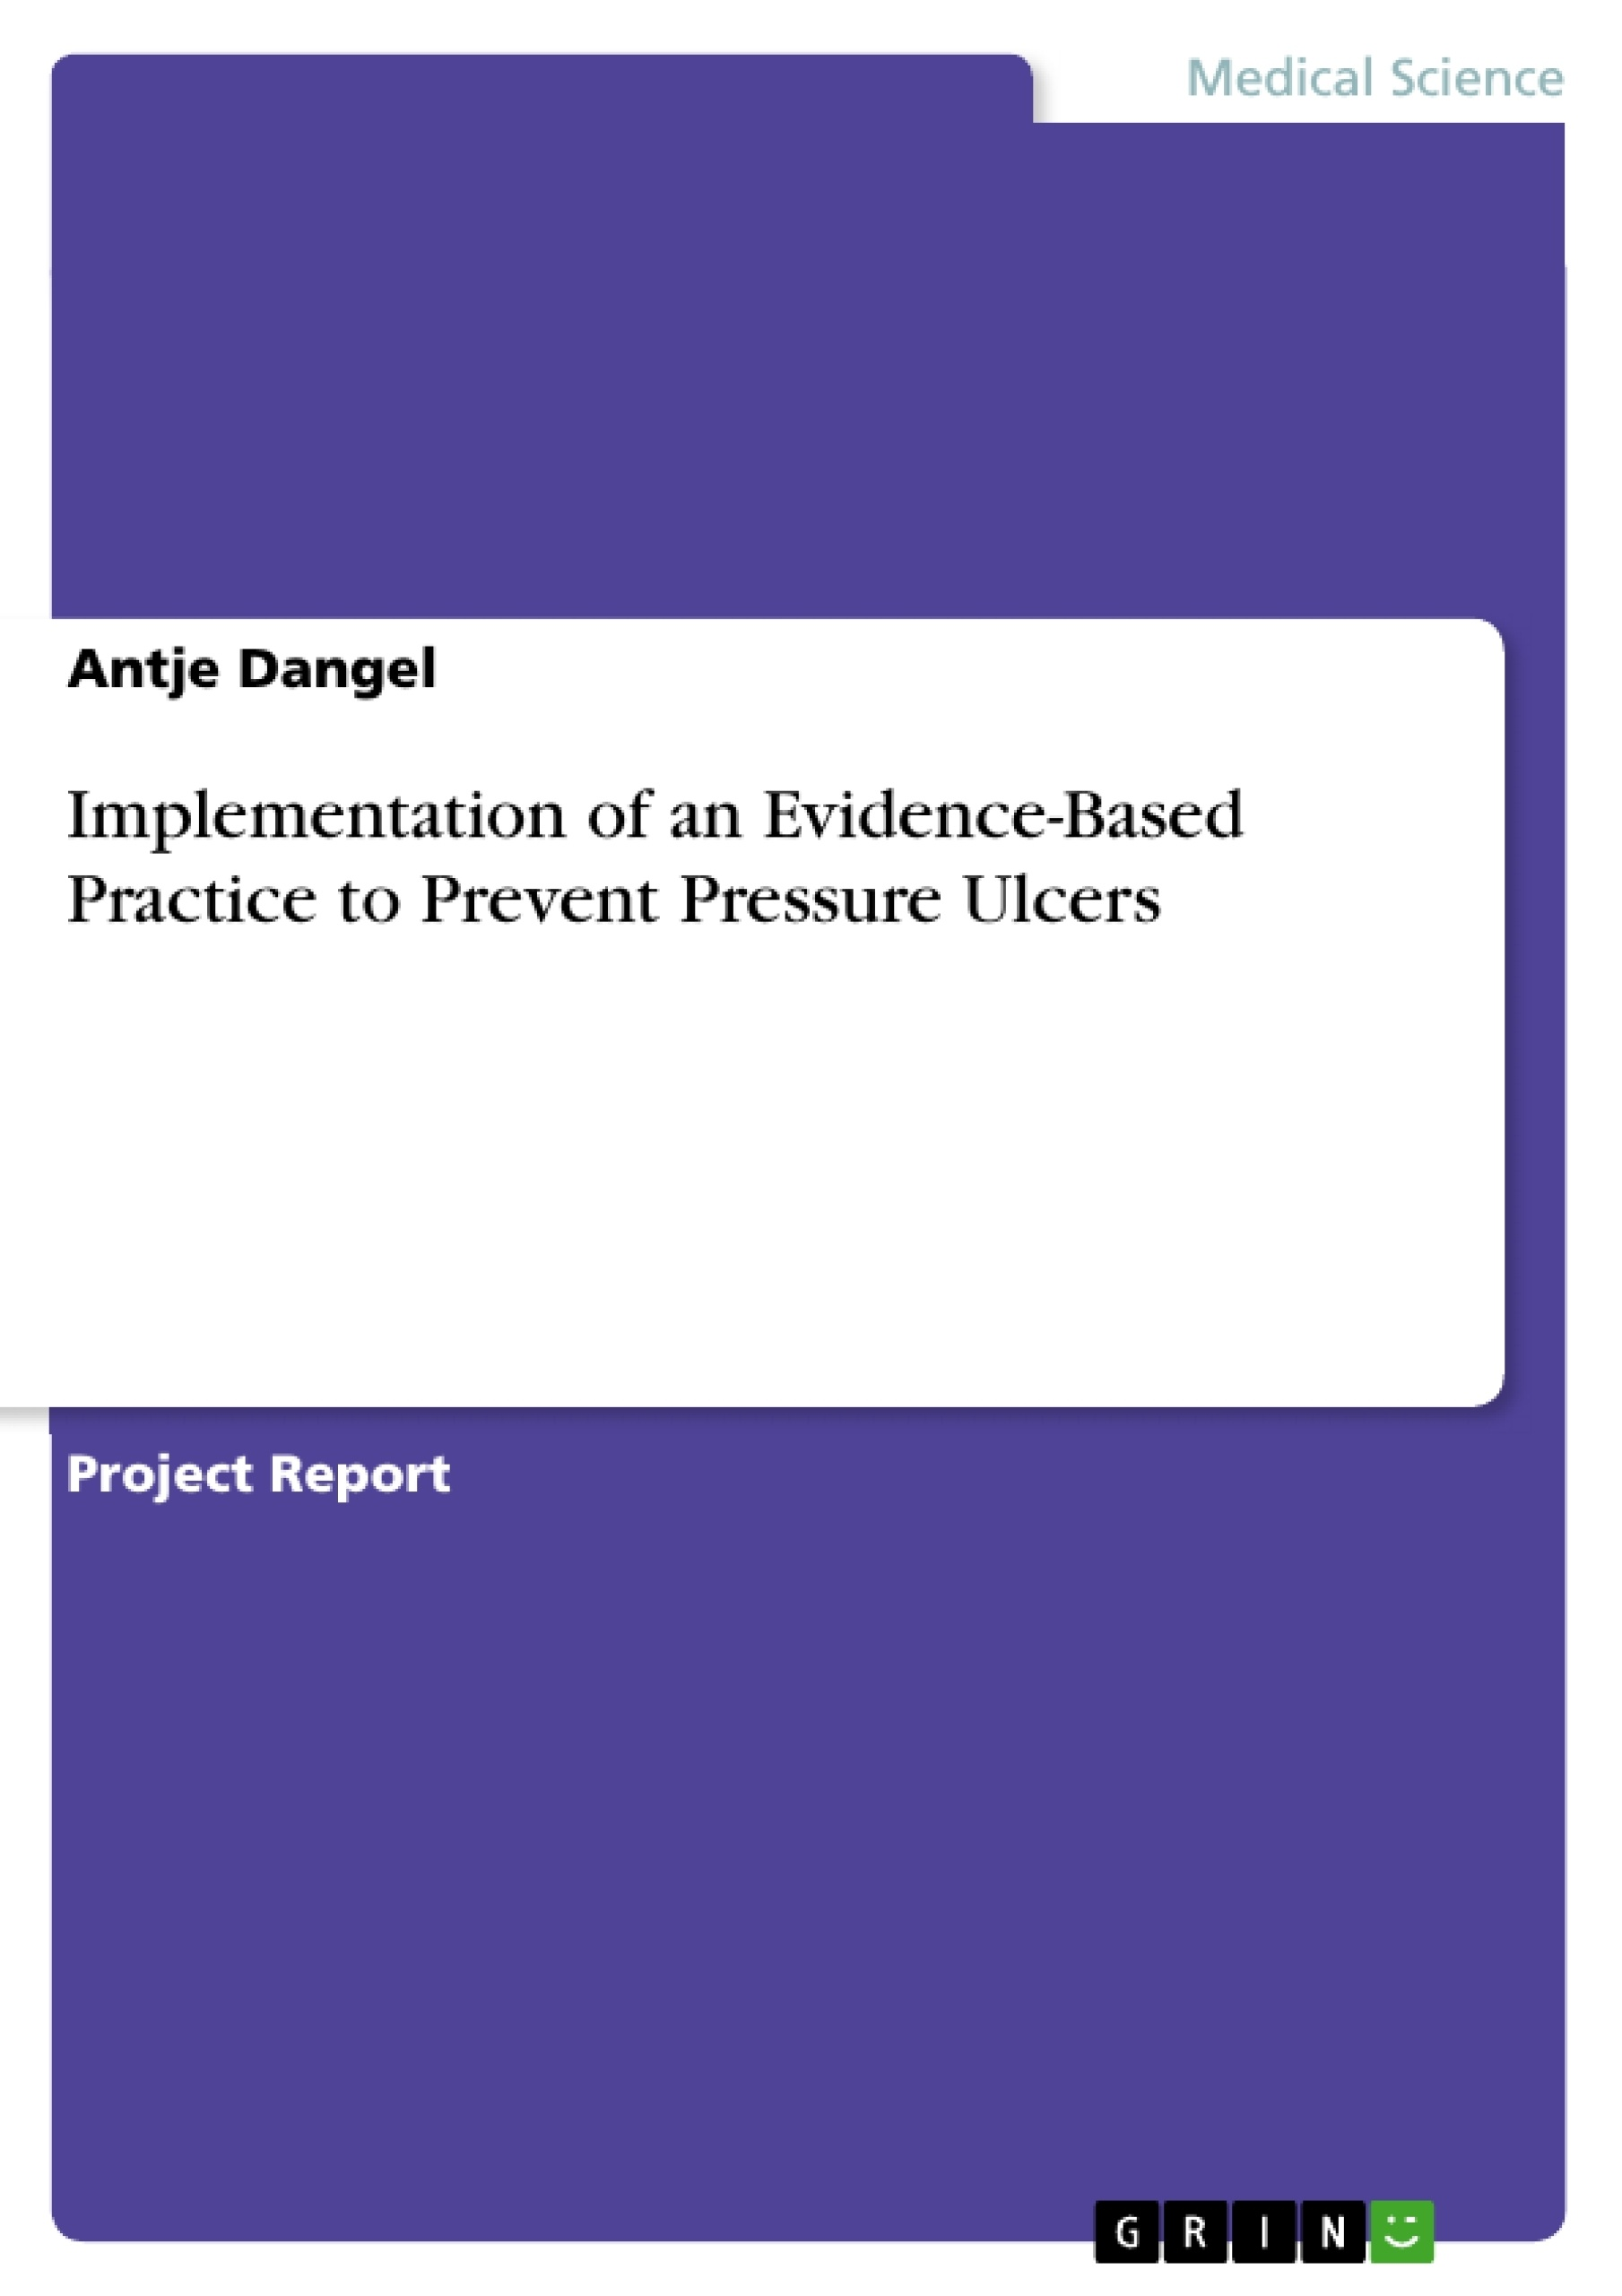 Title: Implementation of an Evidence-Based Practice to Prevent Pressure Ulcers